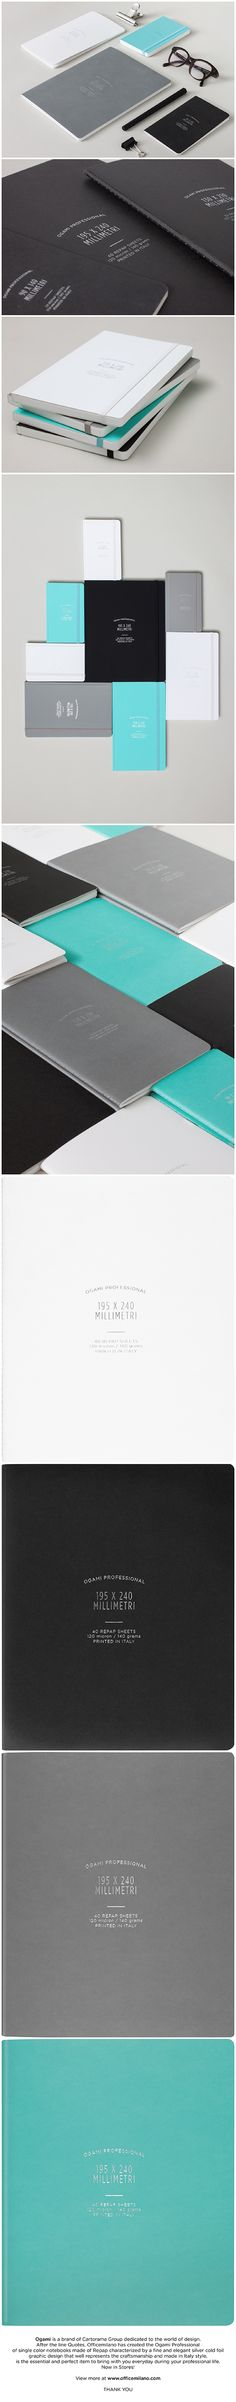 Ogami Professional Collection Notebook by Officemilano